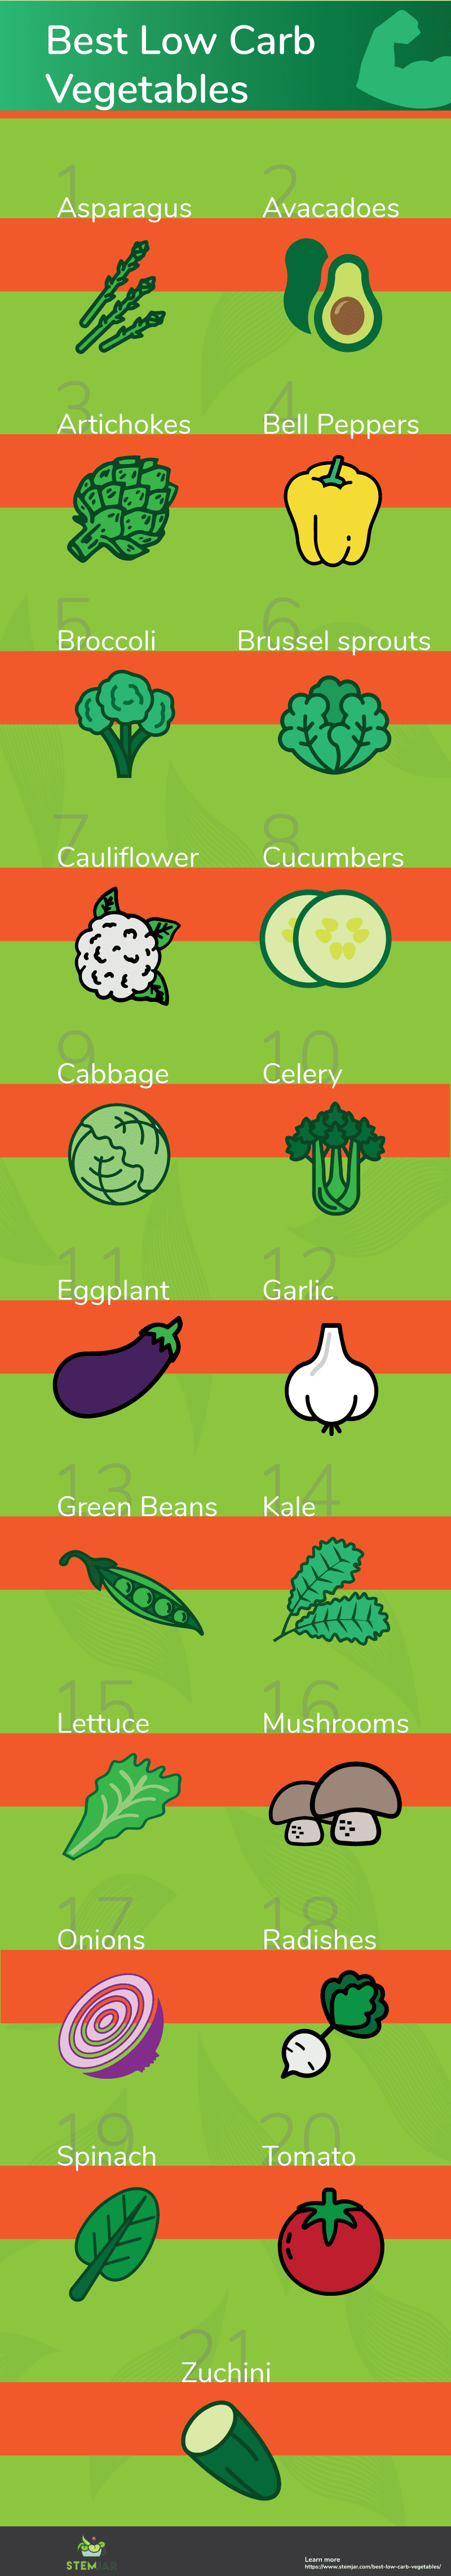 low carb vegetables info graphic